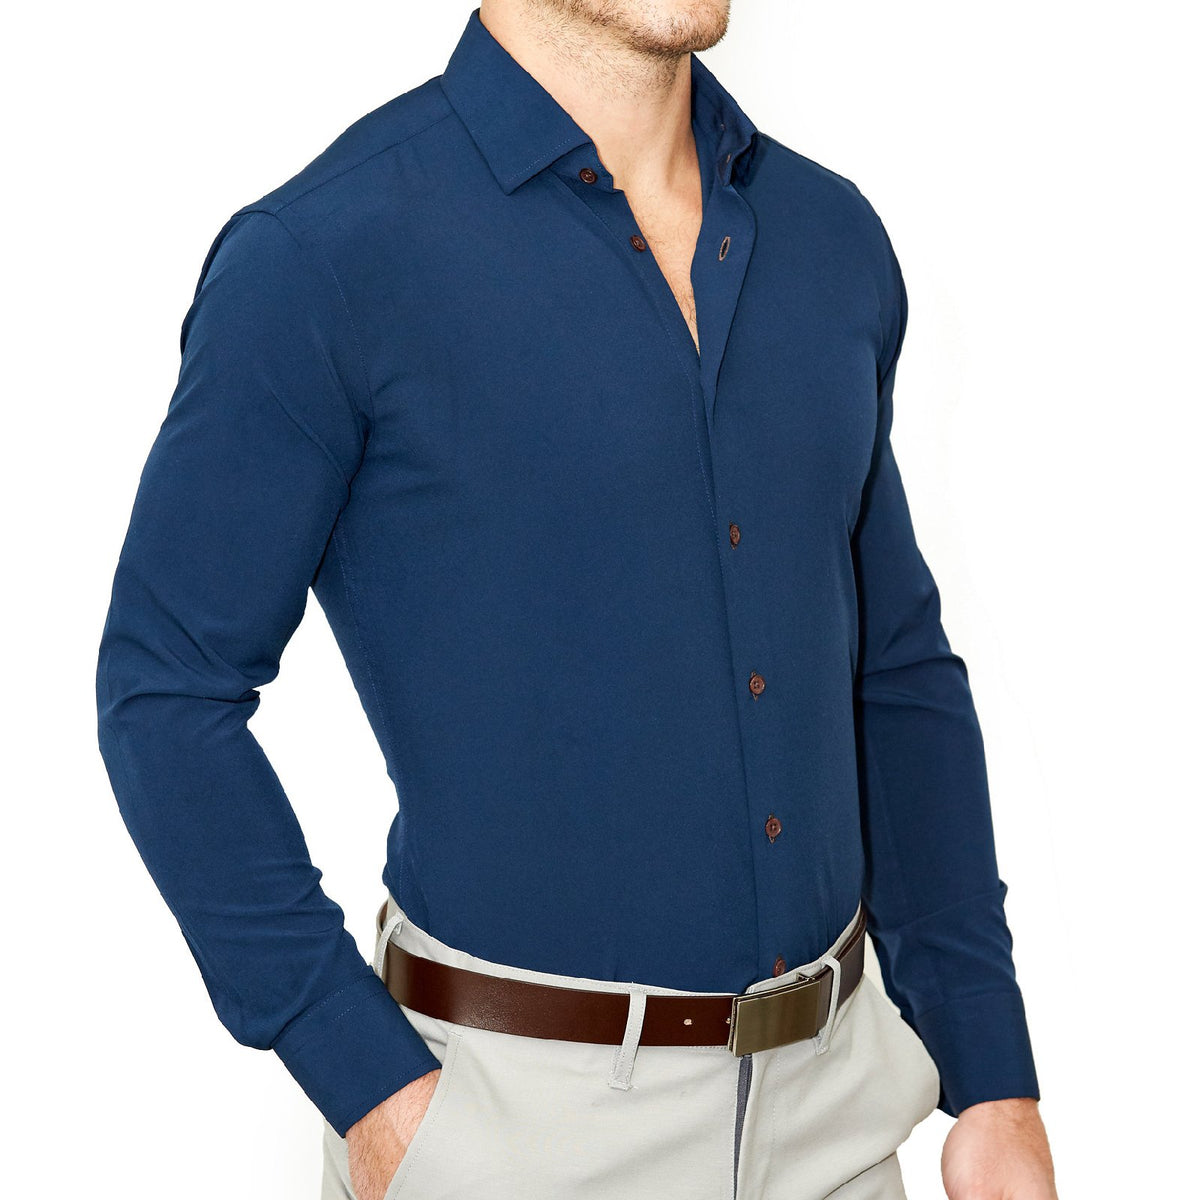 341c3ef26bf1 Athletic Fit Dress Shirts - State and Liberty Clothing Company